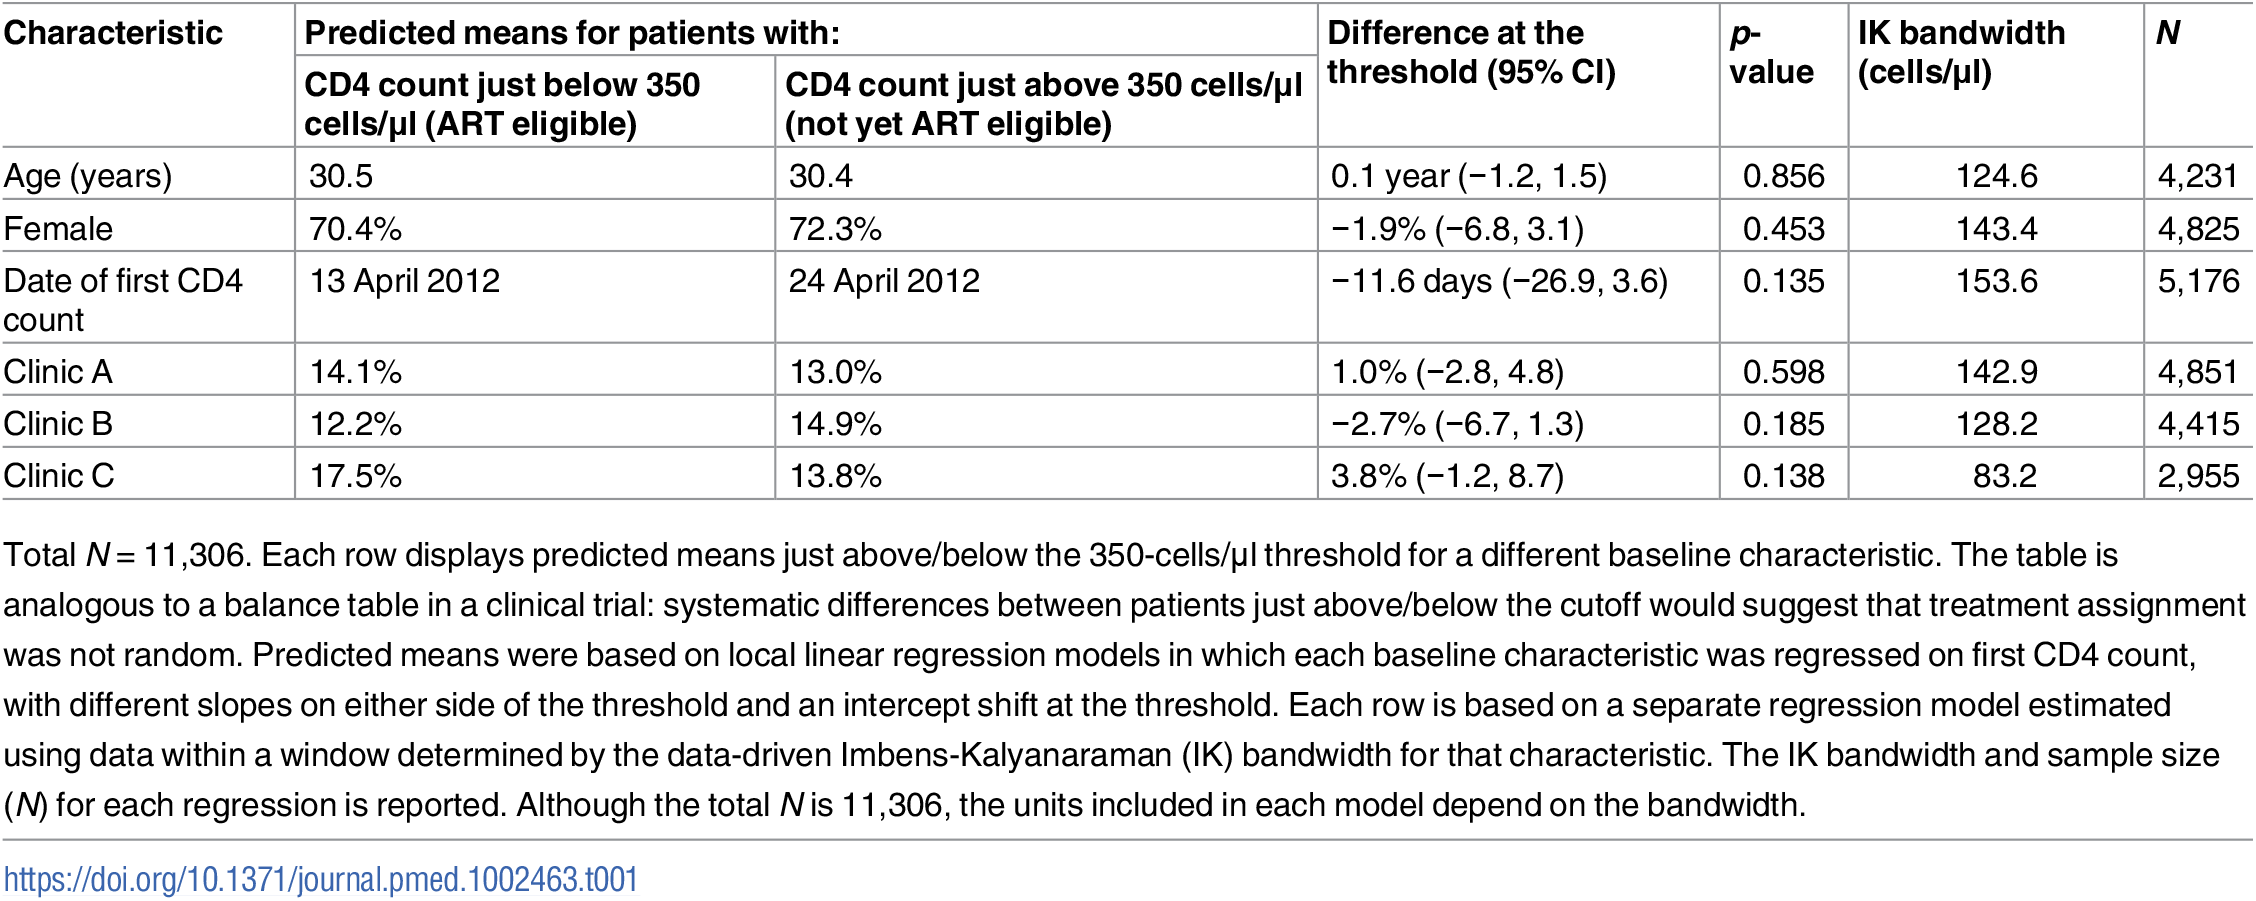 Balance in baseline characteristics of patients just above and below the 350-cells/μl CD4 count threshold.